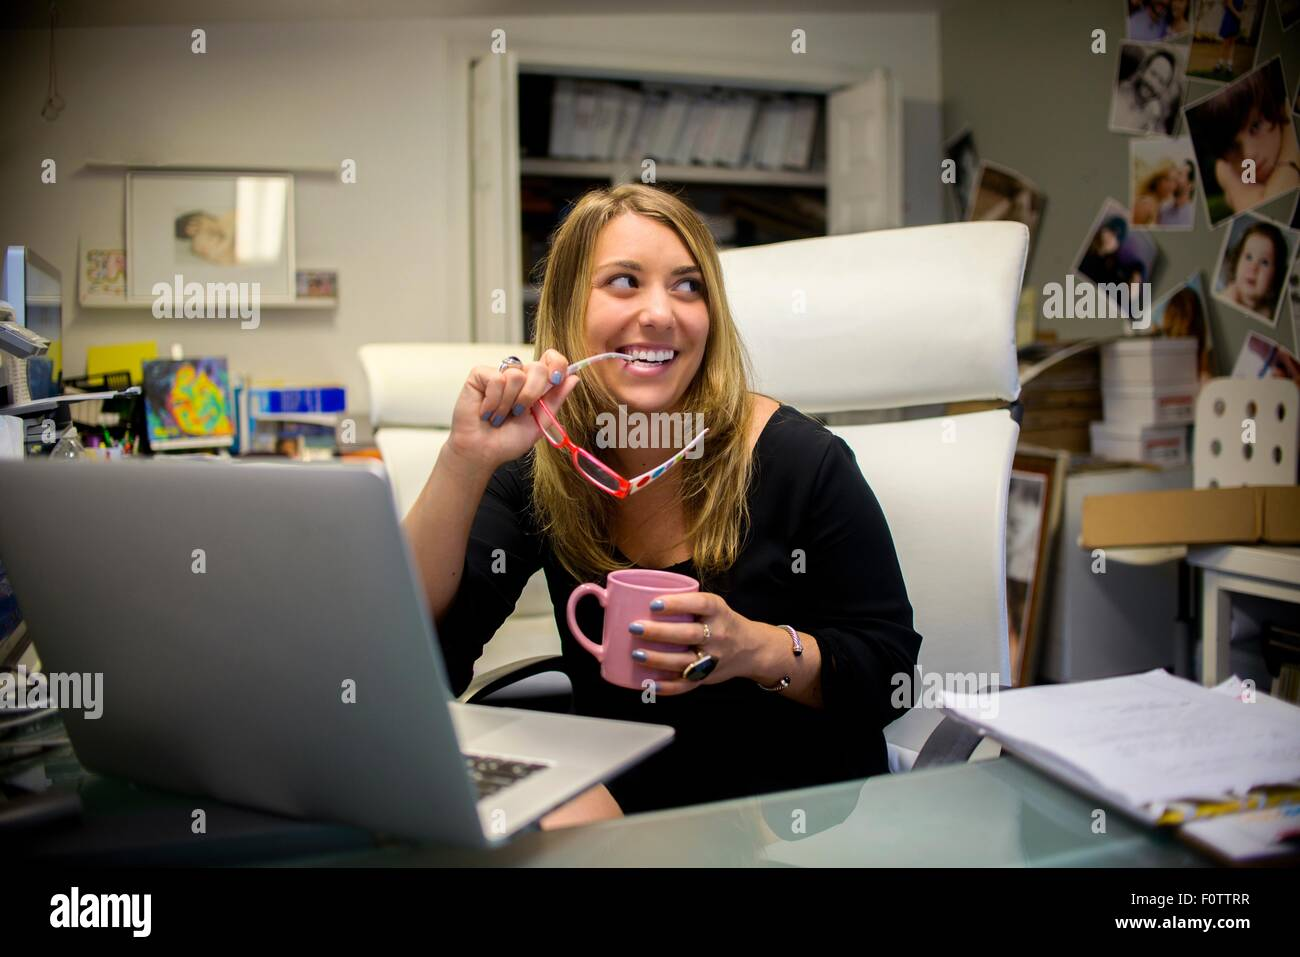 Young woman in office, sitting at desk, holding eyeglasses and coffee - Stock Image